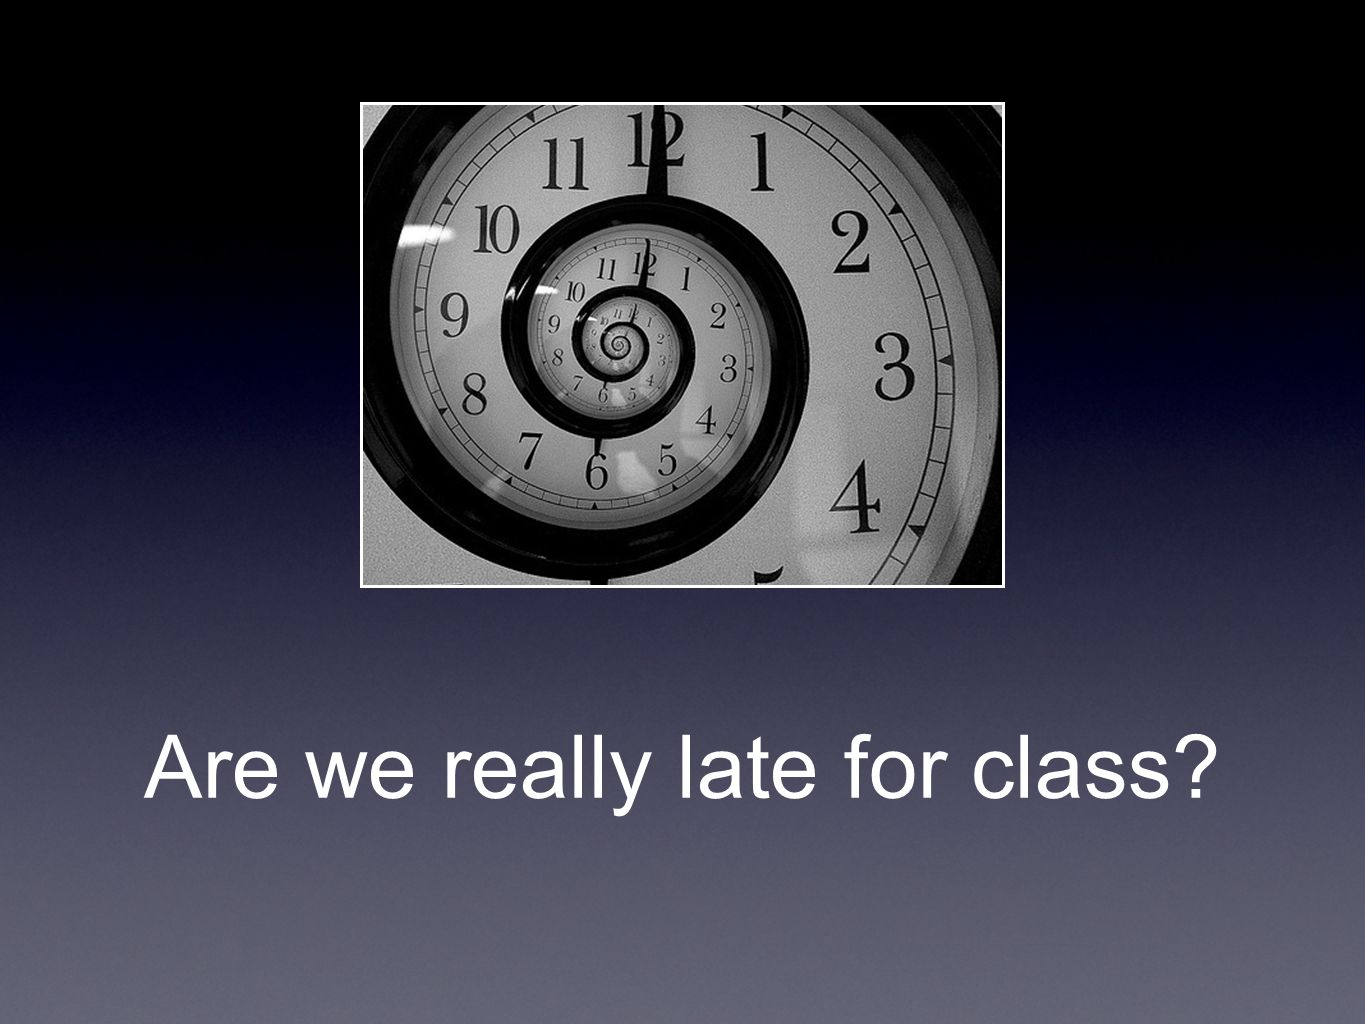 Are we really late for class